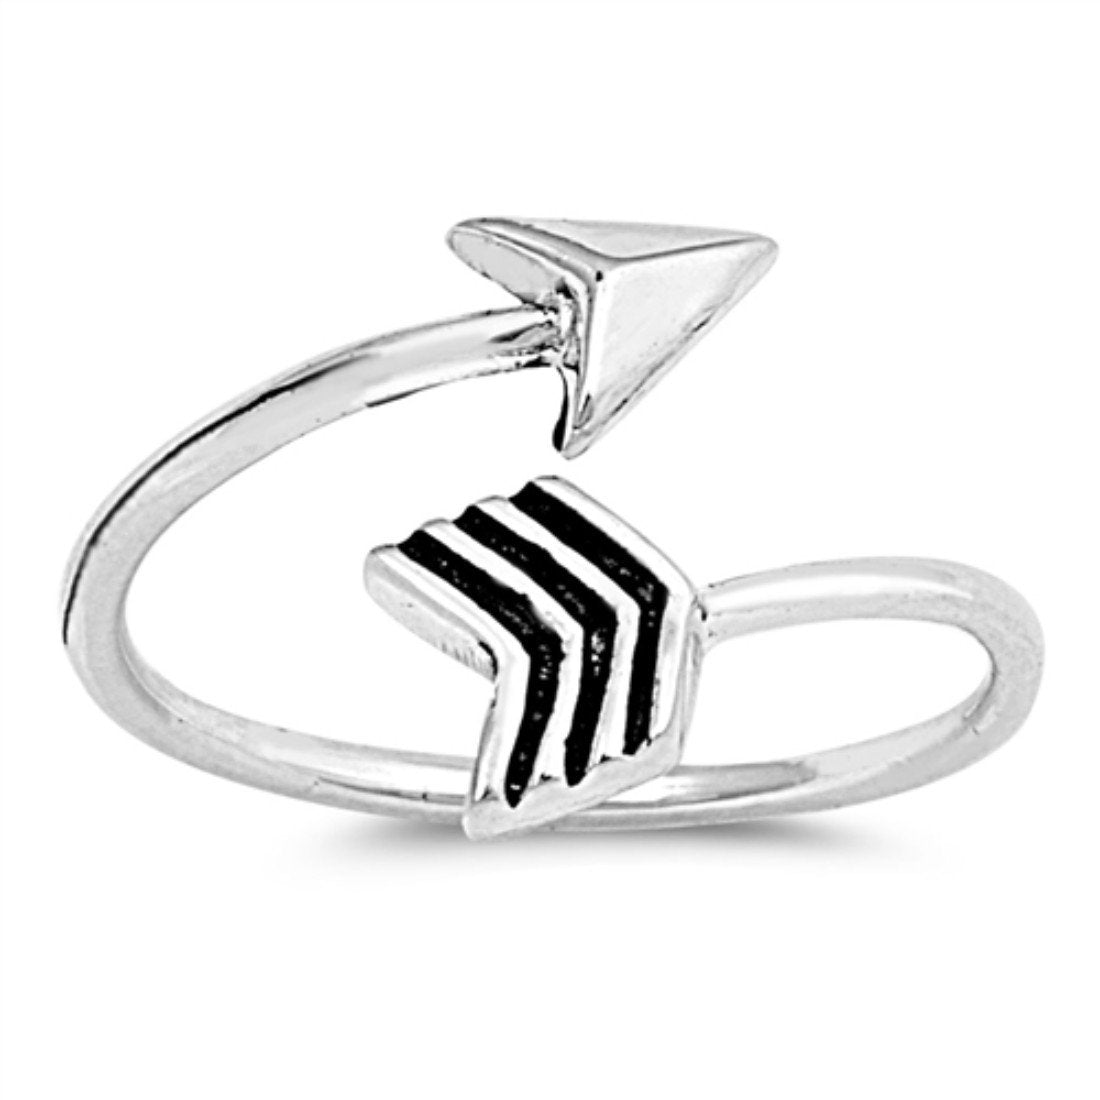 Arrow Silver Toe Ring Adjustable Band 925 Sterling Silver (9mm)